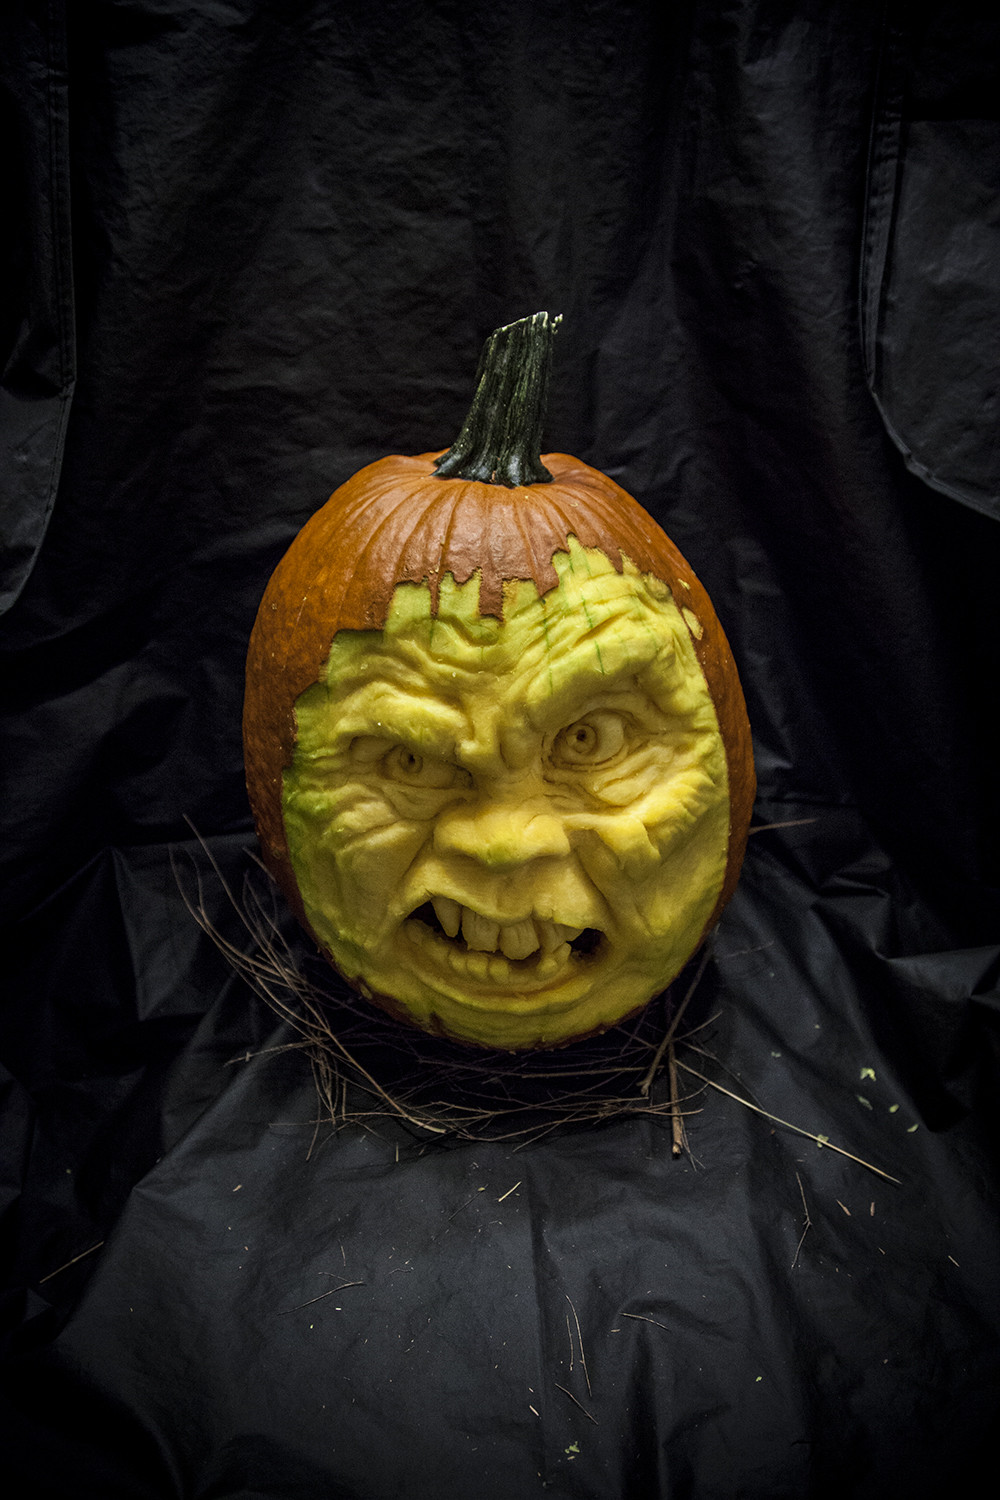 http://www.reddit.com/r/pics/comments/110bdc/i_think_ive_found_my_callingheres_pumpkin_attempt/